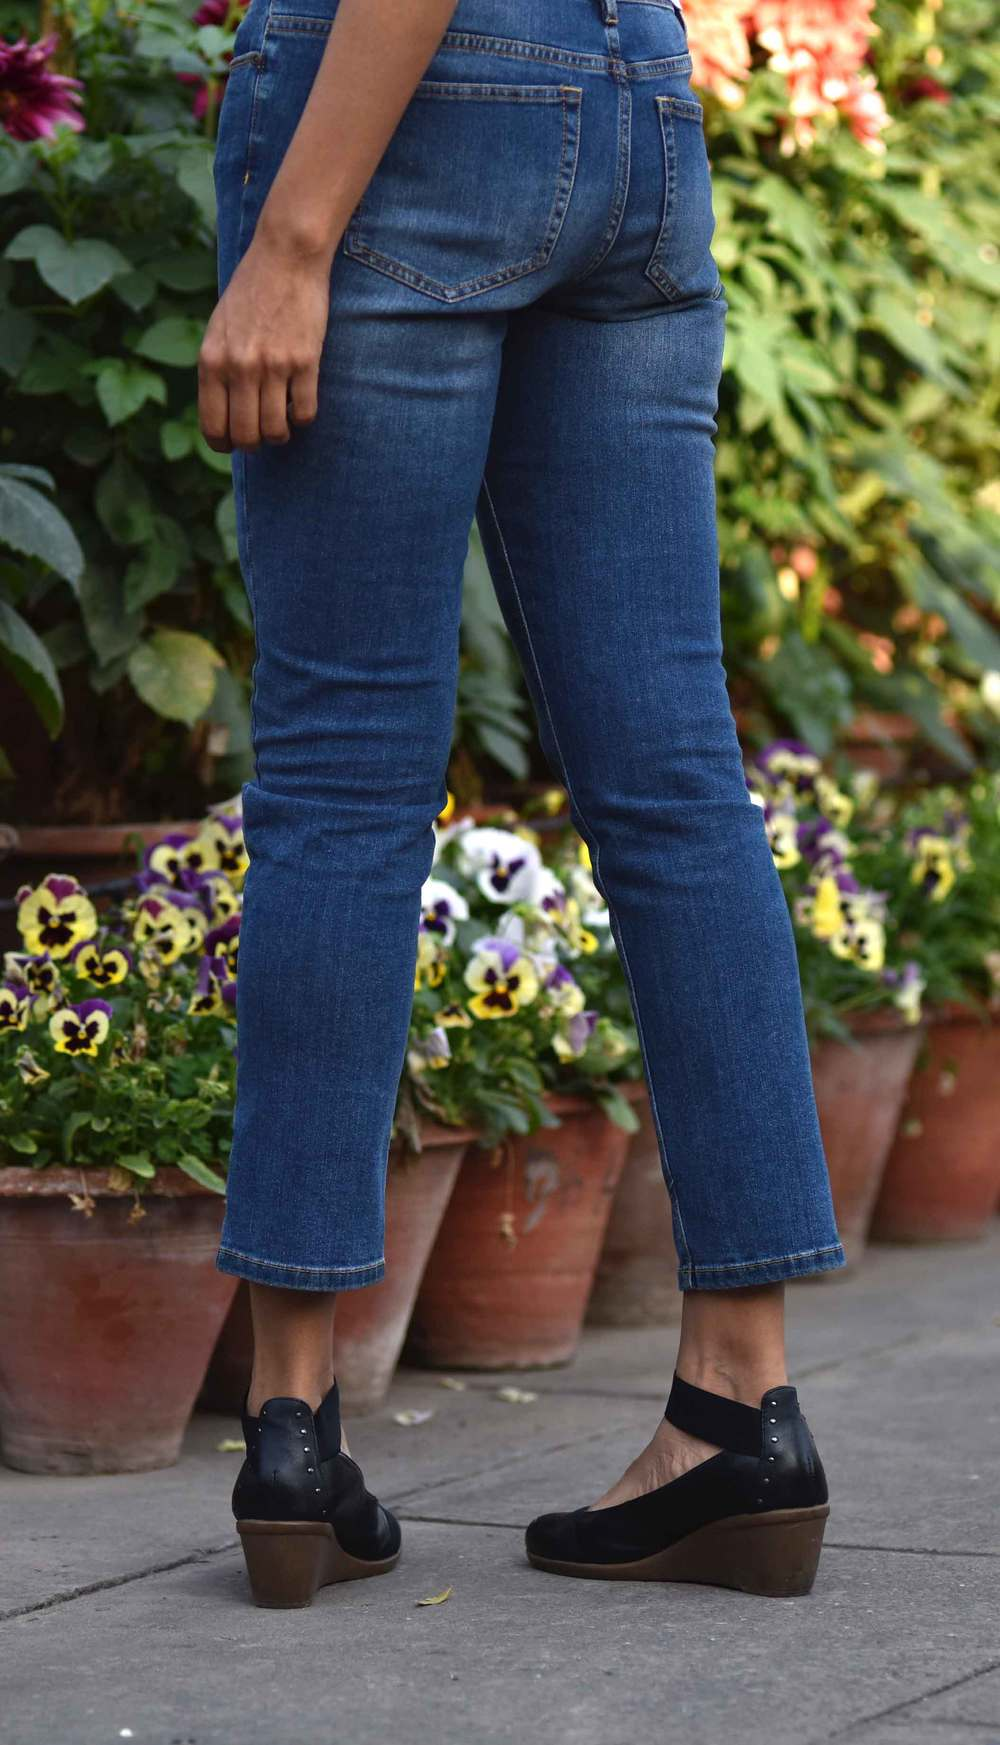 The JJill Authentic Fit Slim Ankle Jeans are comfy and nice! Image©gunjanvirk